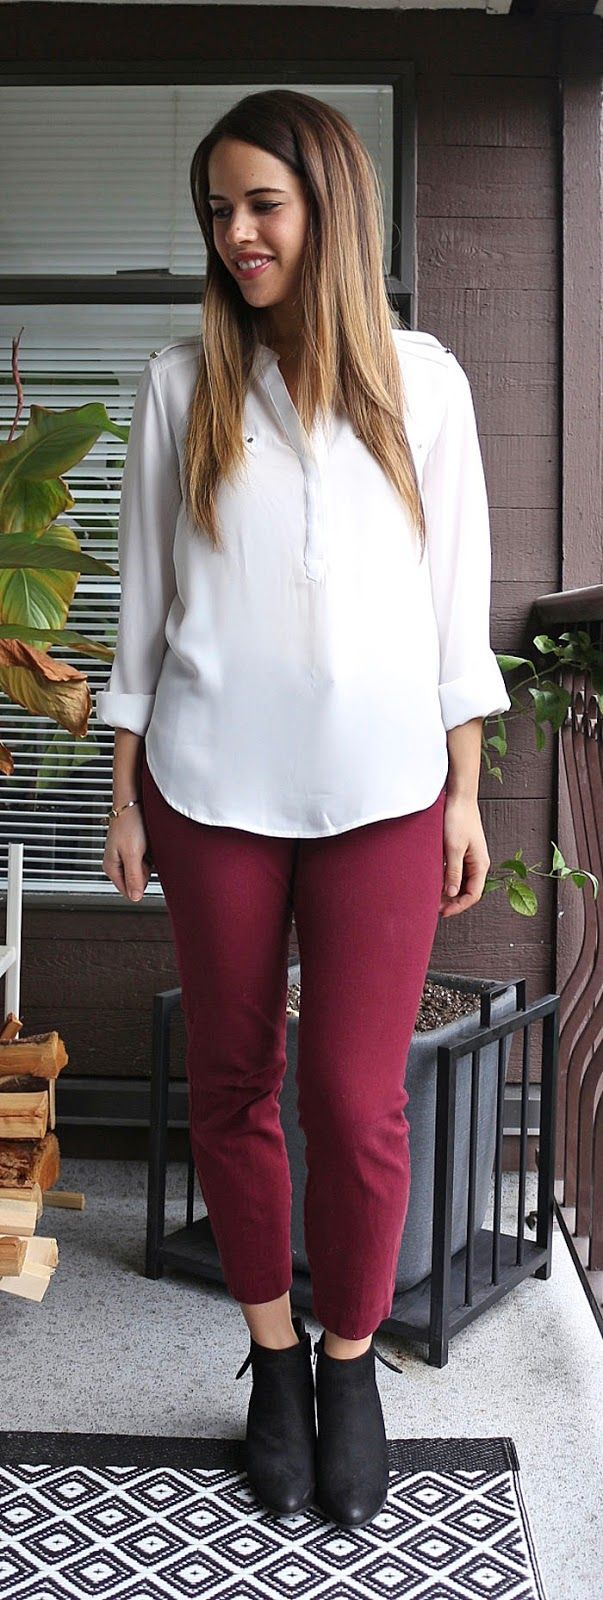 Jules in Flats - Dynamite Blouse, Old Navy Pixie Pants, Steve Madden Jaydun Booties